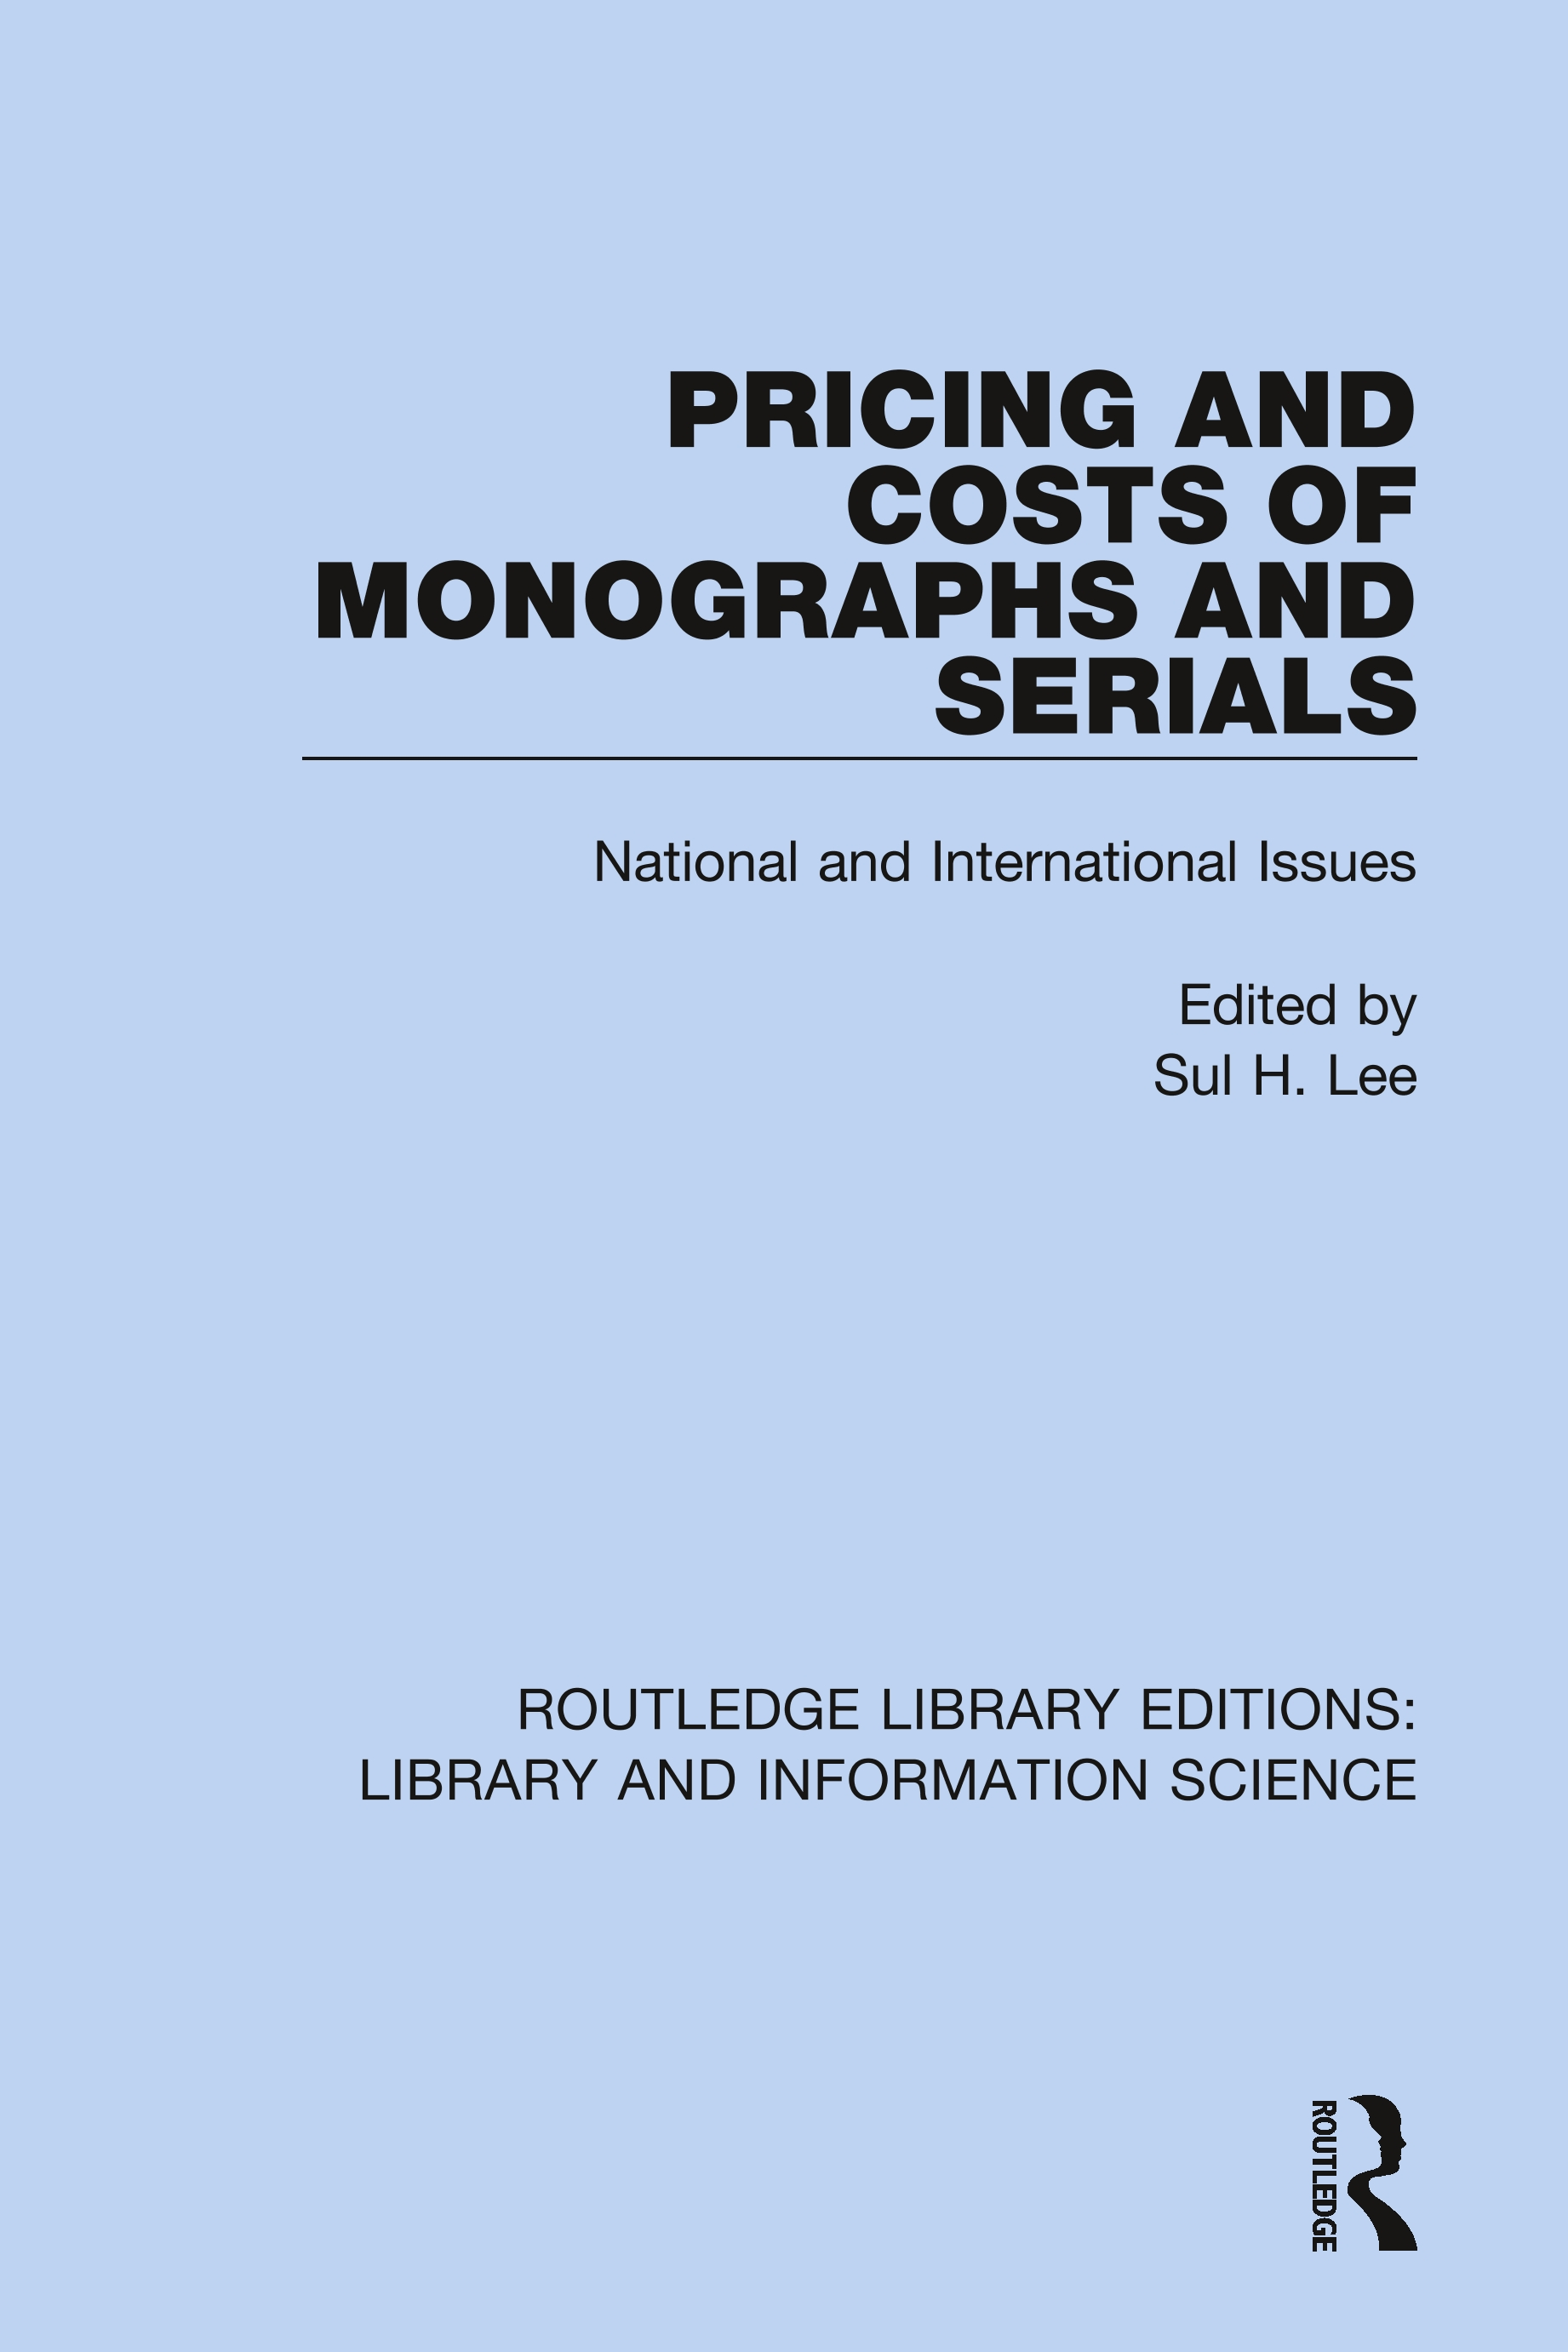 Pricing and Costs of Monographs and Serials: National and International Issues book cover